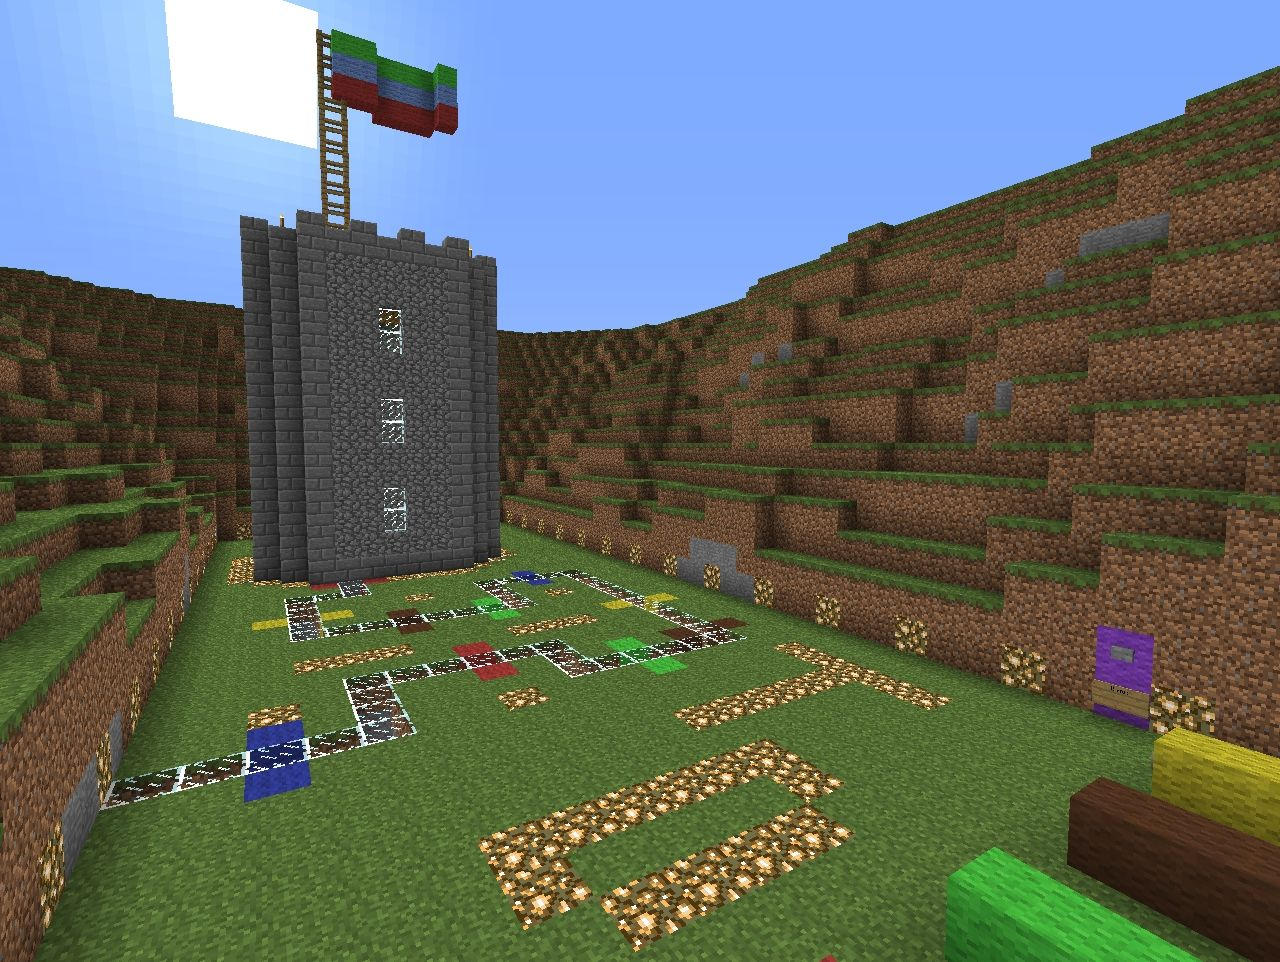 play minecraft for free at y10.com - Play Minecraft Classic game